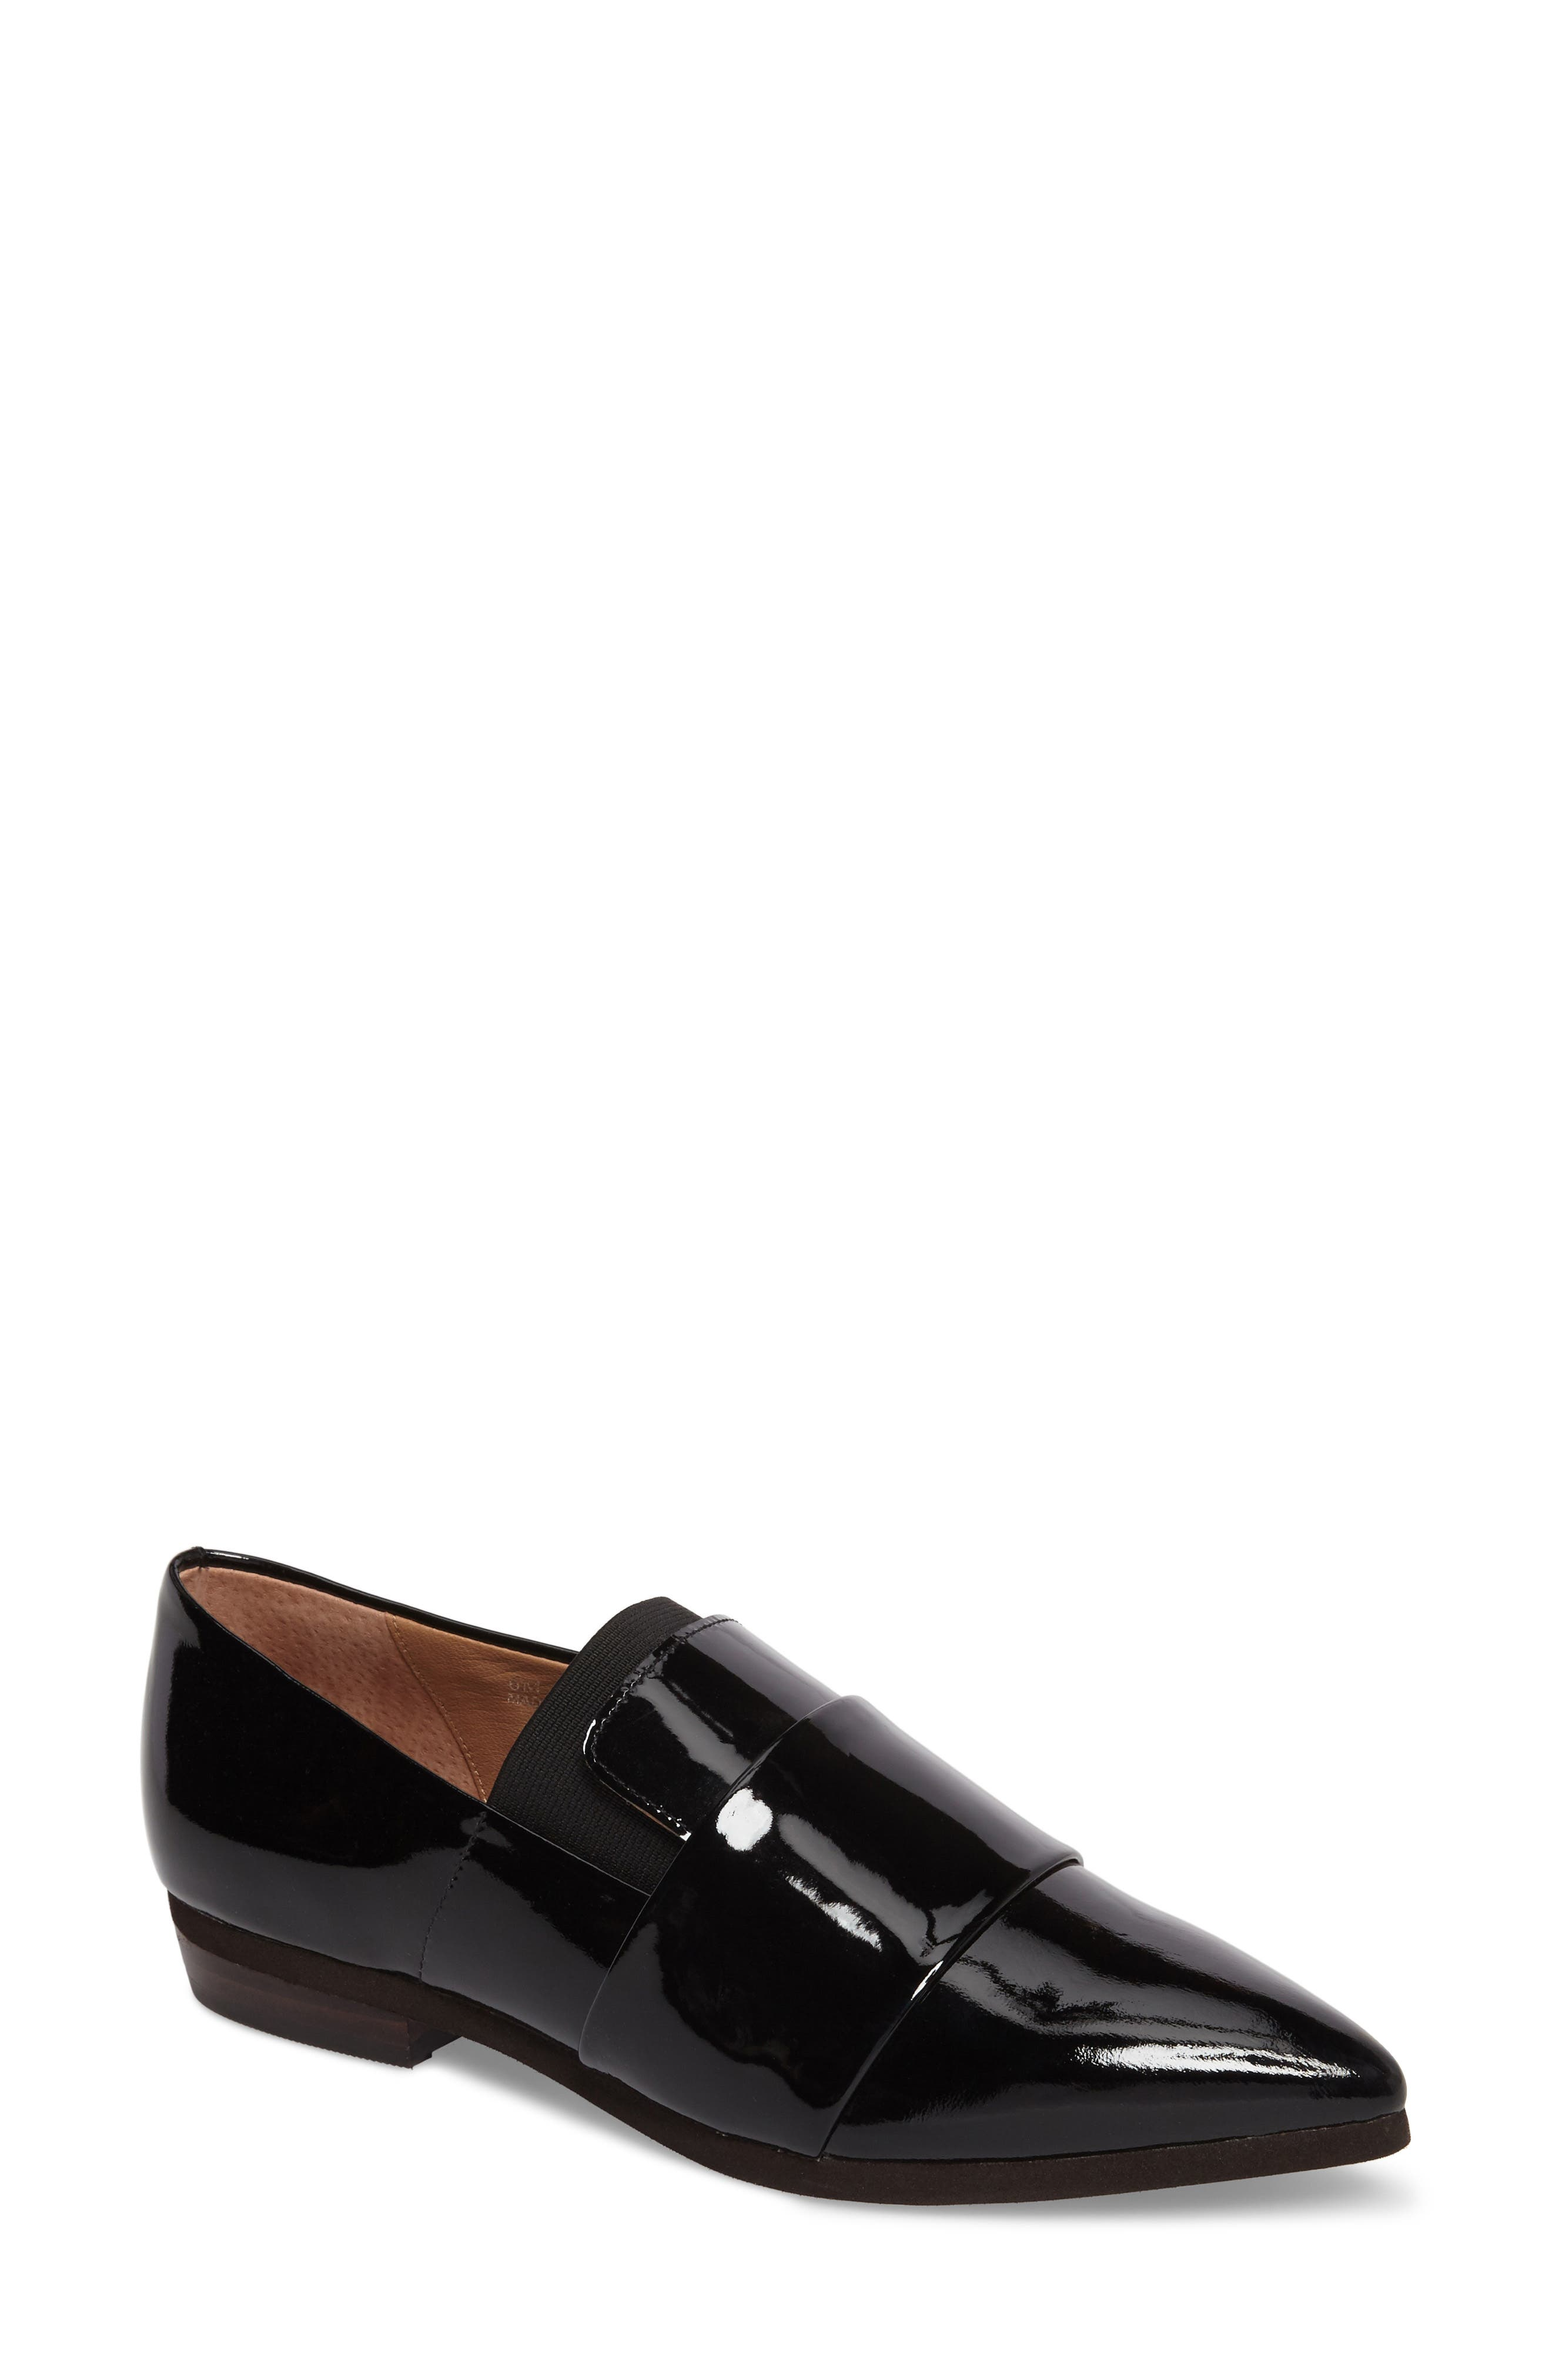 Madison Loafer,                             Main thumbnail 1, color,                             008